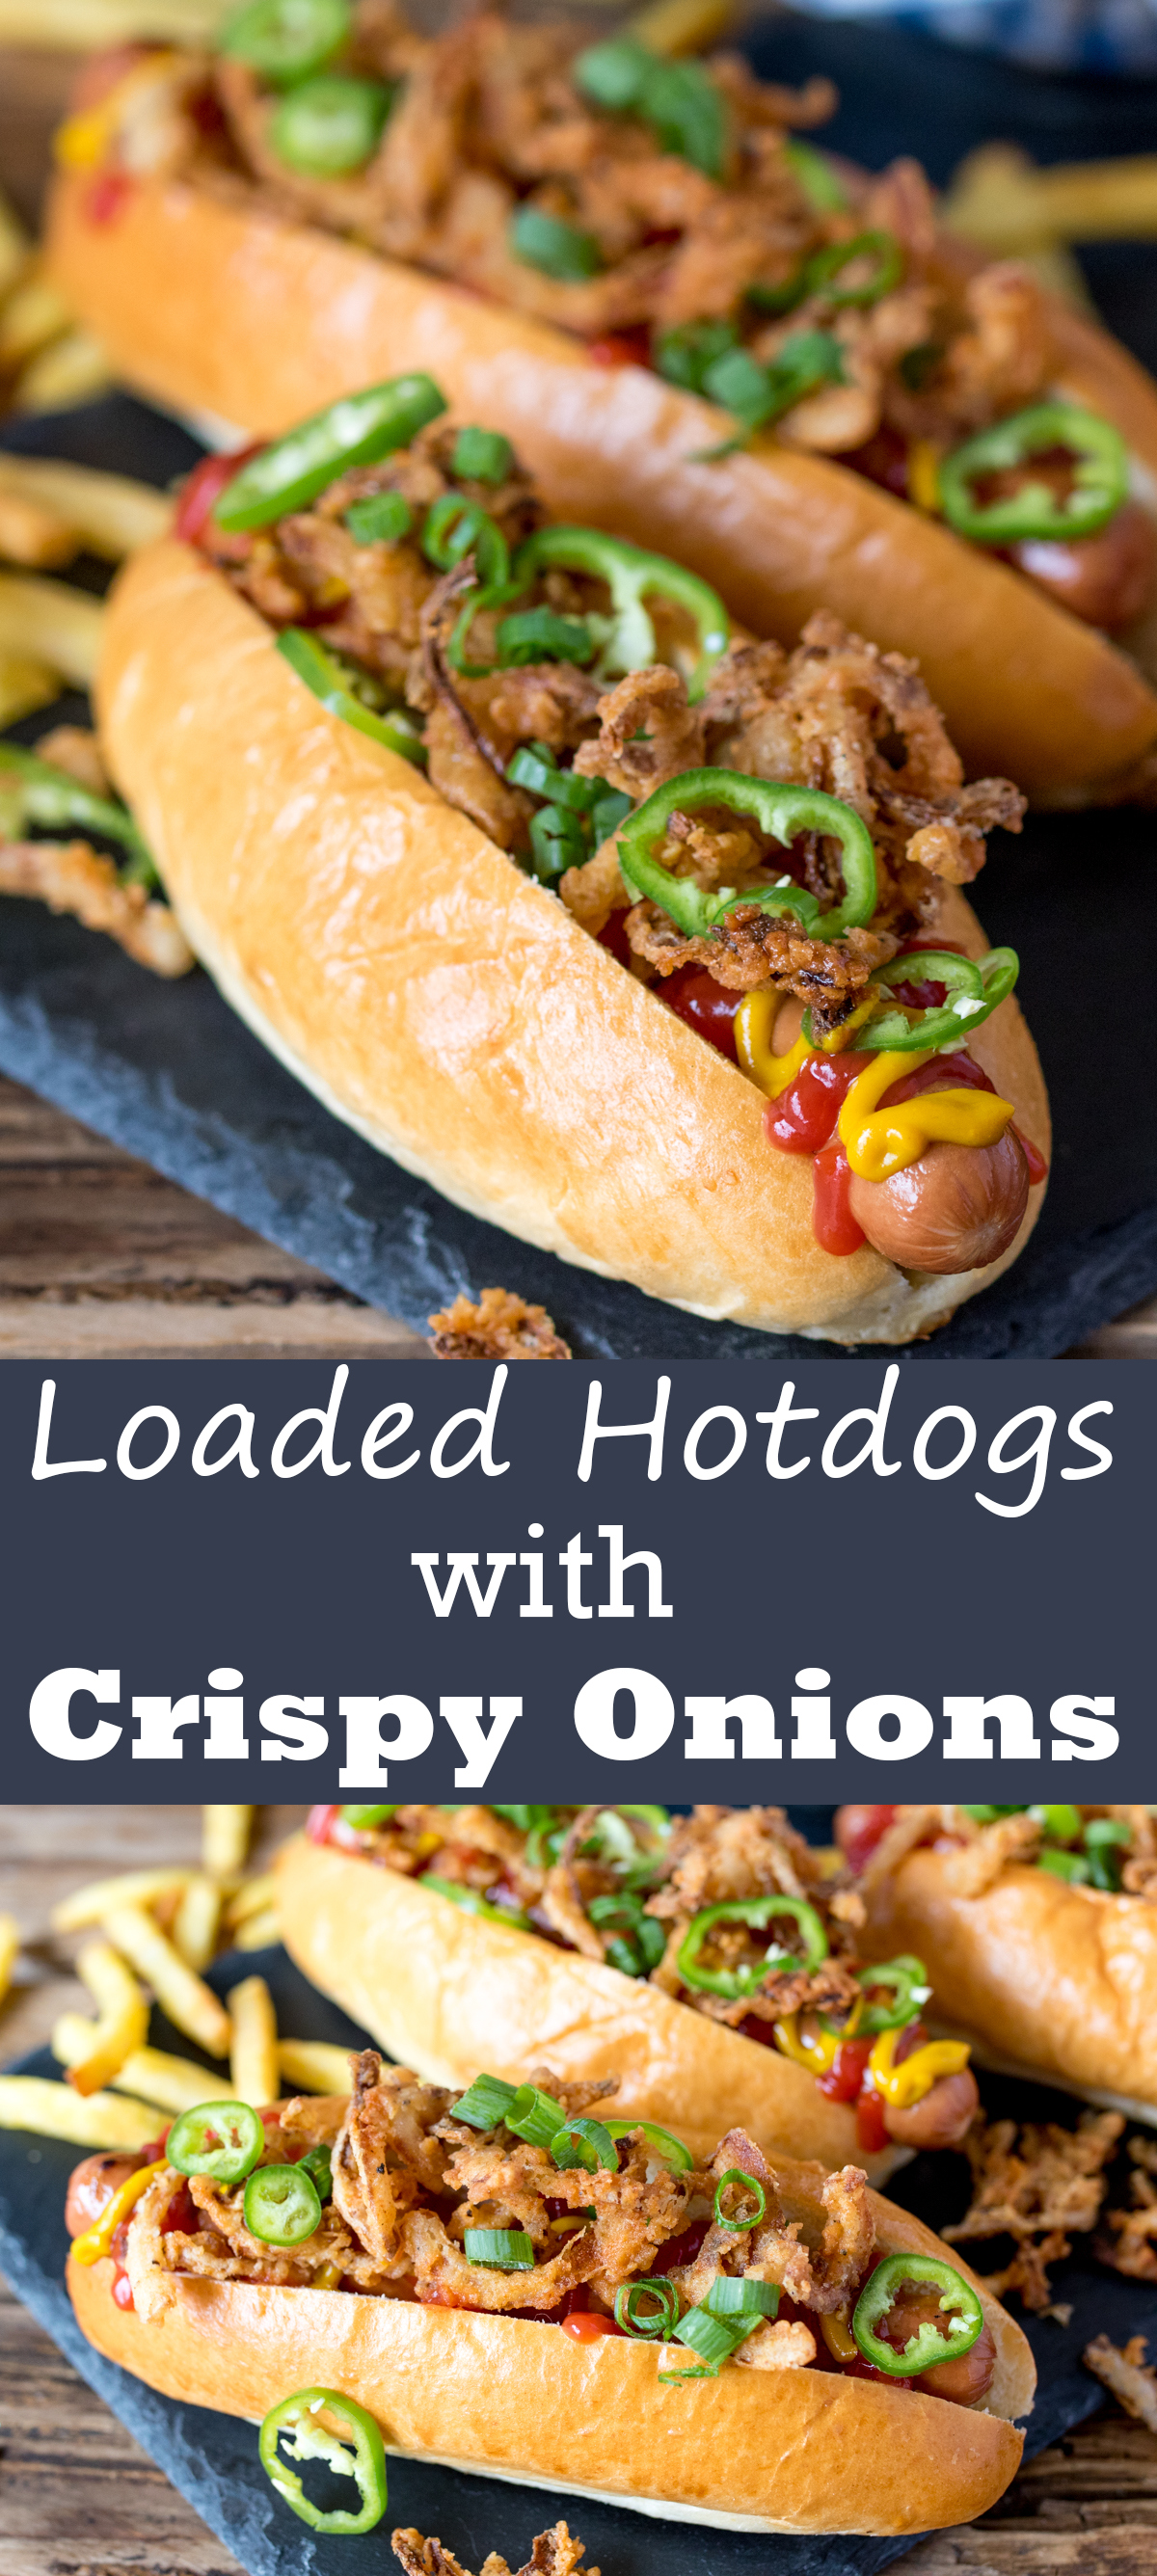 Everyone will love these hot dogs loaded with crispy onion fries!